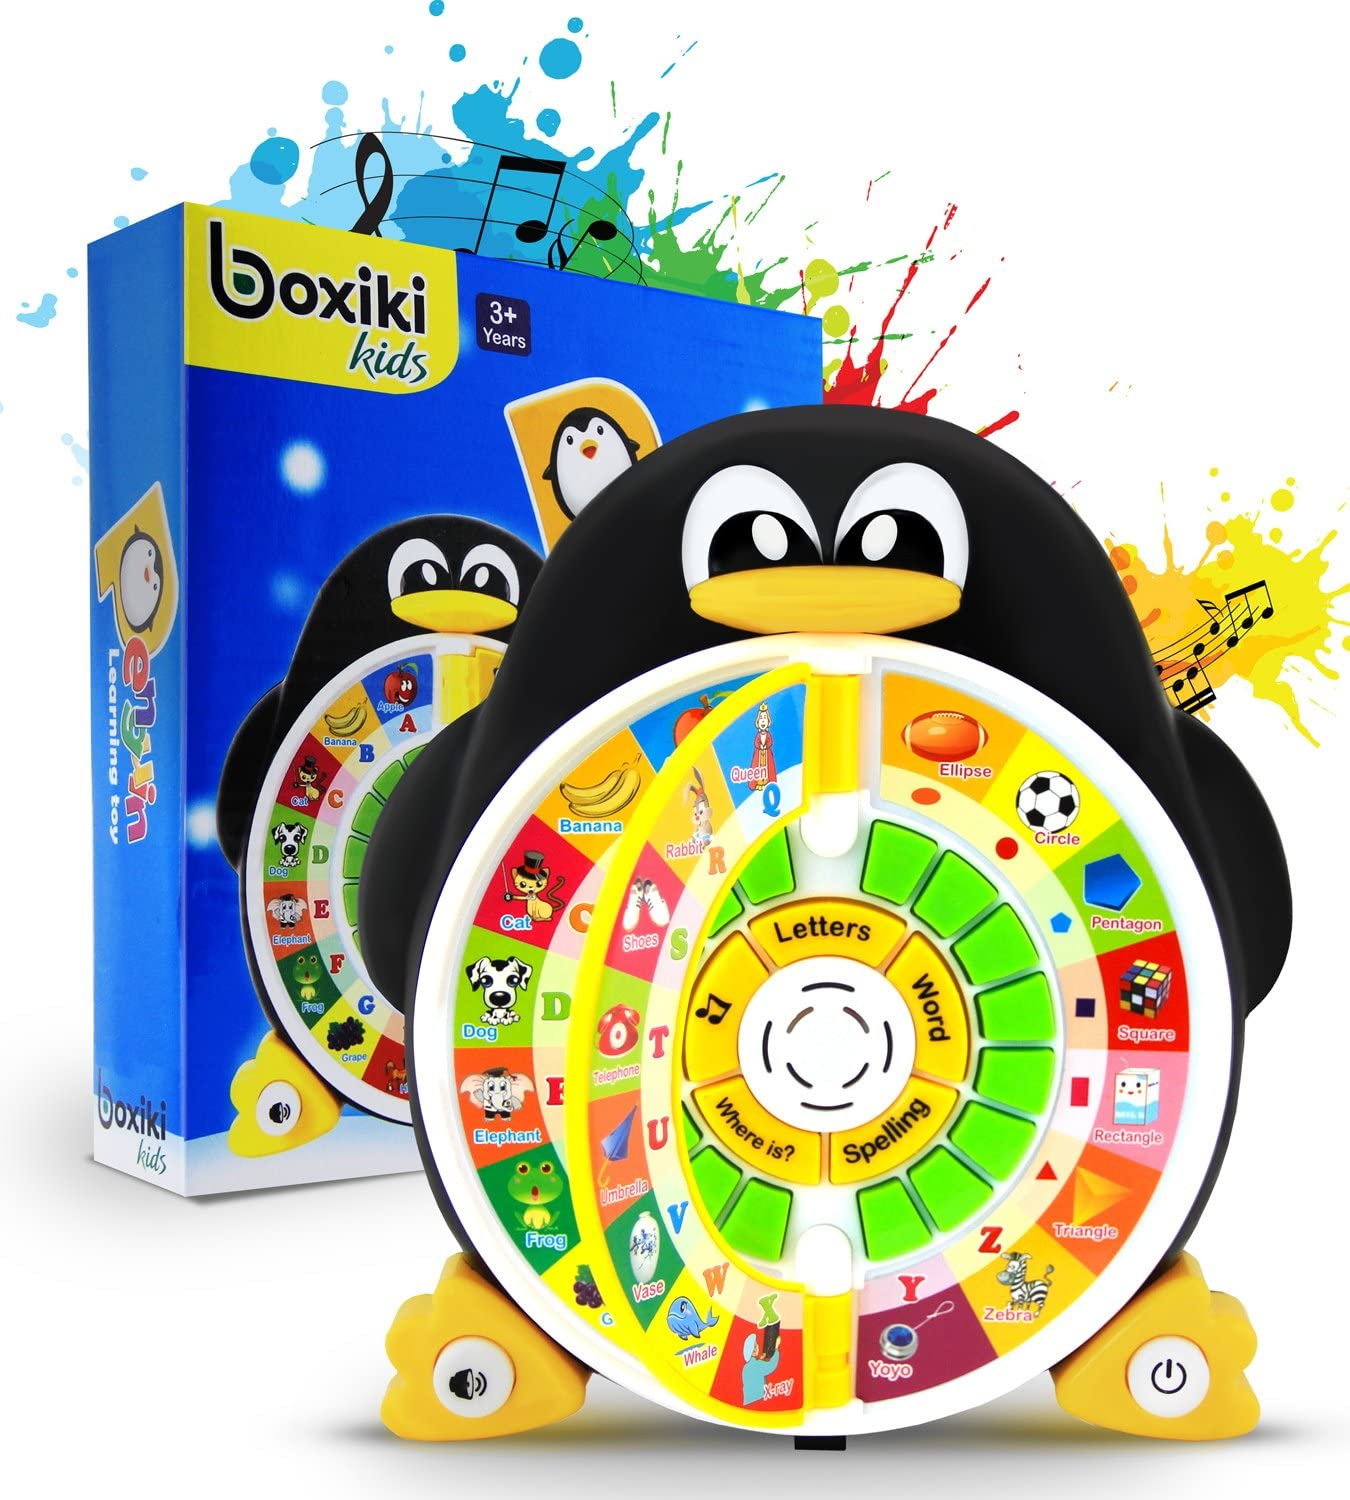 """Boxiki kids Penguin Power ABC Learning Educational Toy Learning Game Center Boosts Core Pre-Kindergarten Subject Comprehension – ABCs, Words, Spelling, Shapes, """"Where is?"""" & Songs"""